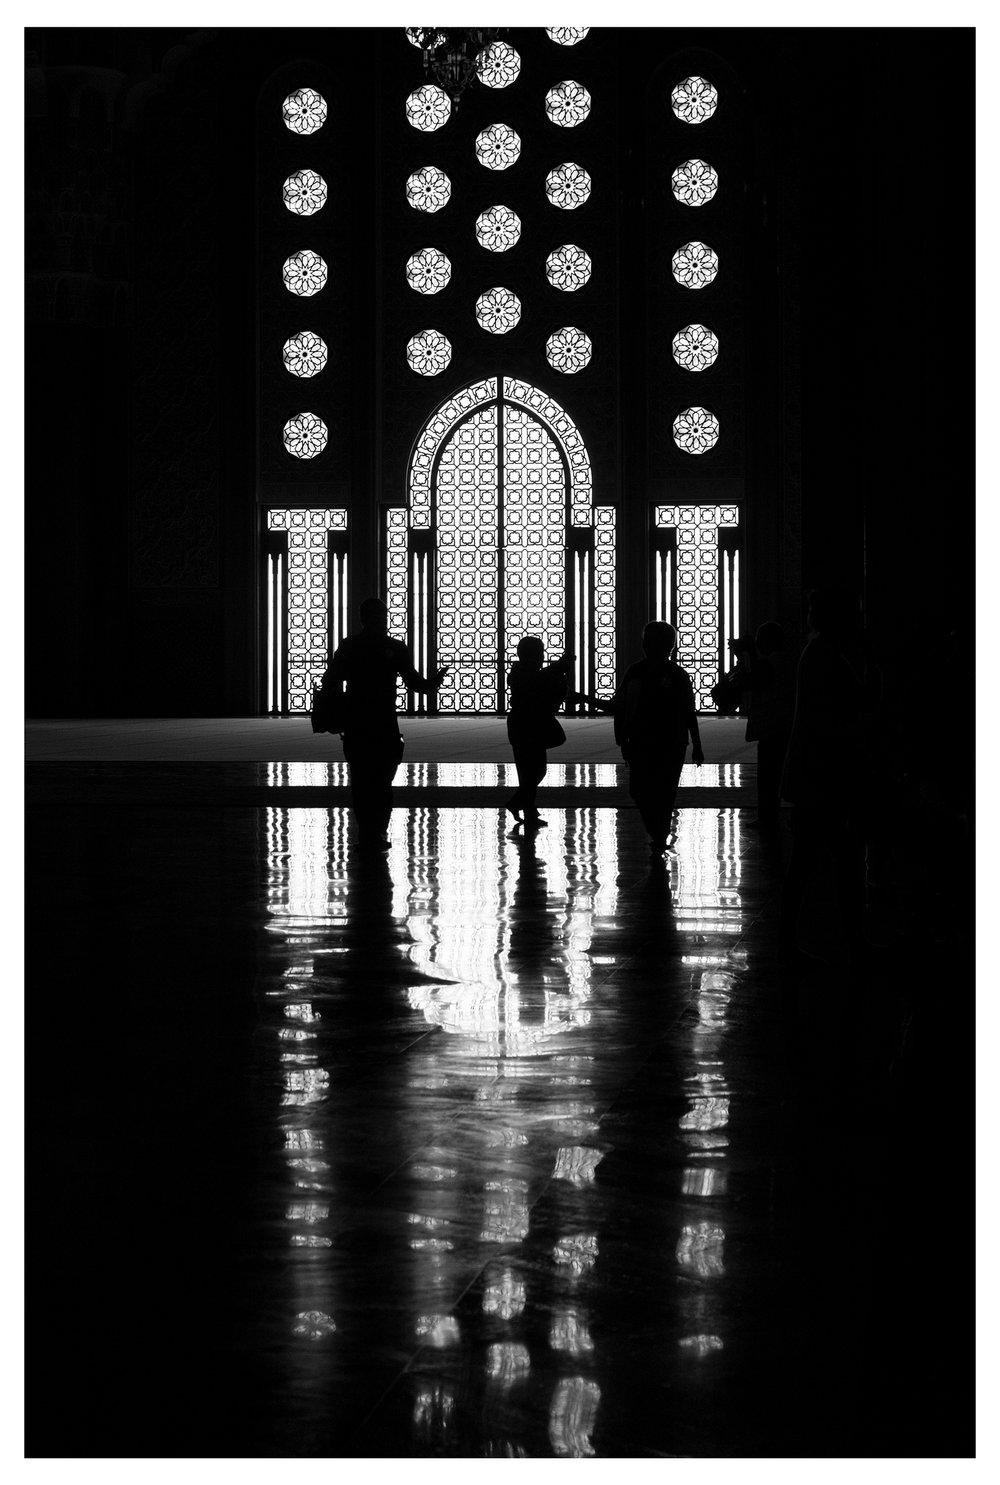 MosqueReflection8Frame-sm.jpg